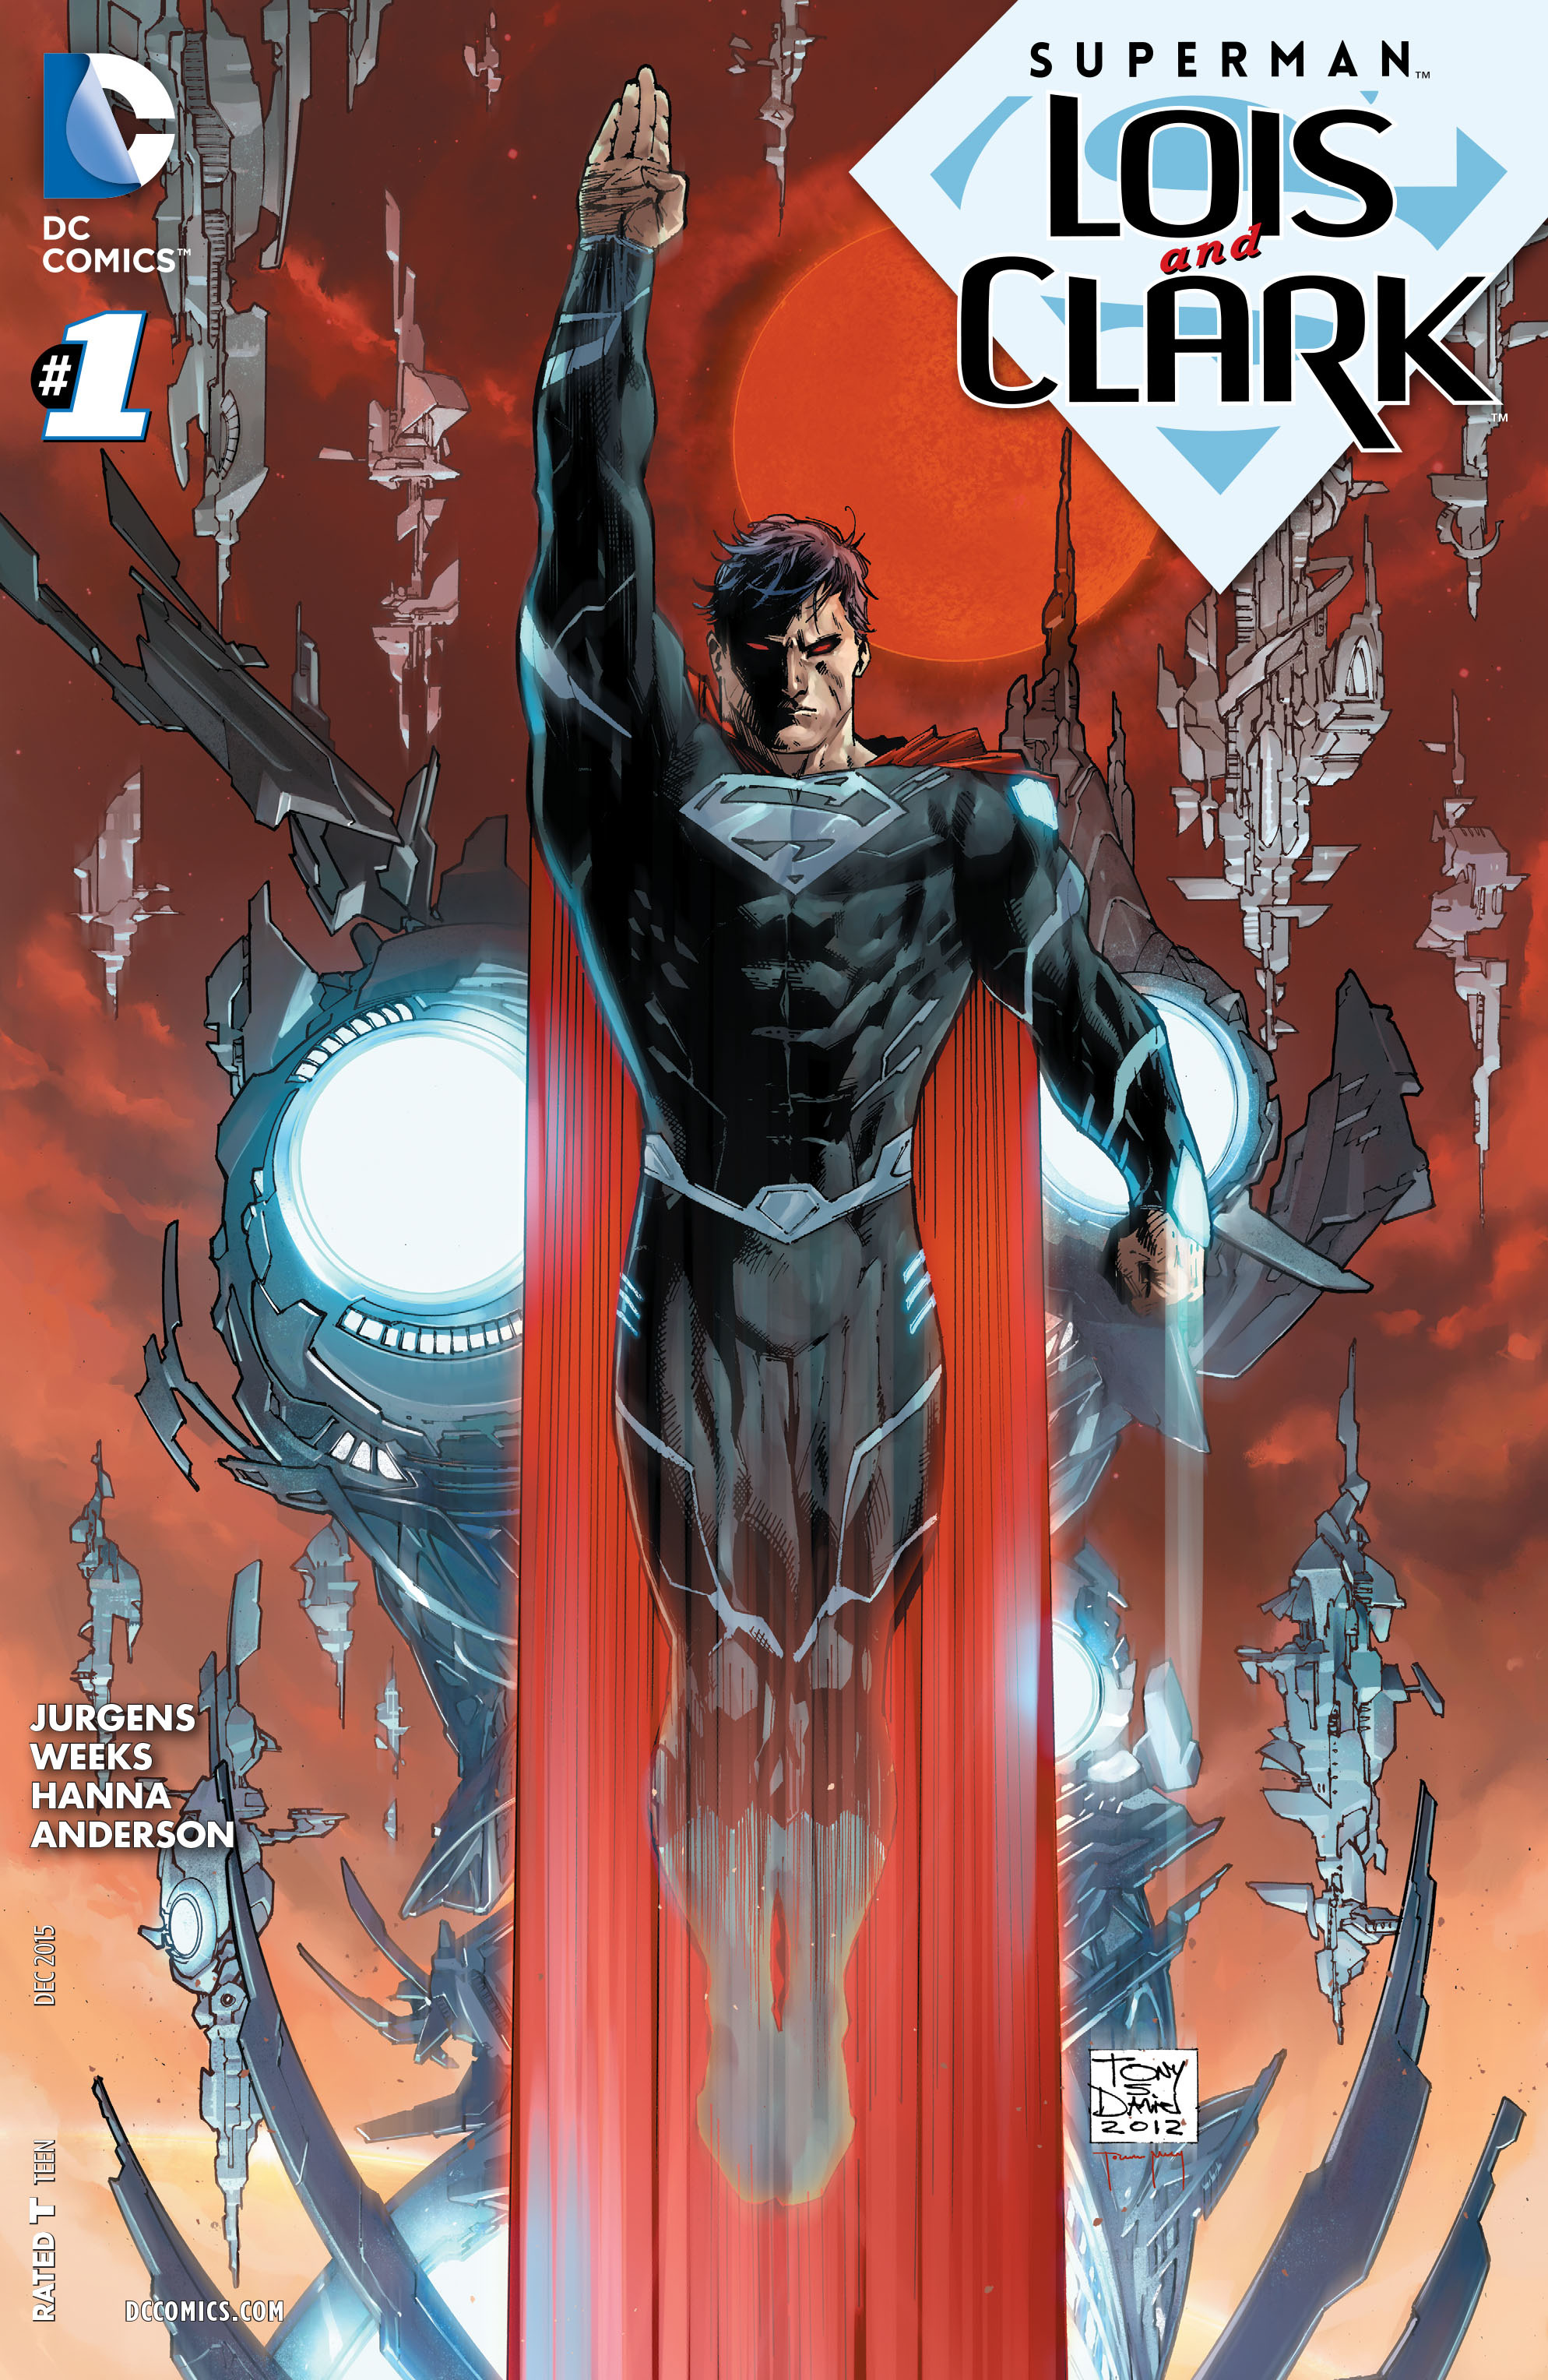 Superman Lois and Clark #1 spoilers review 1